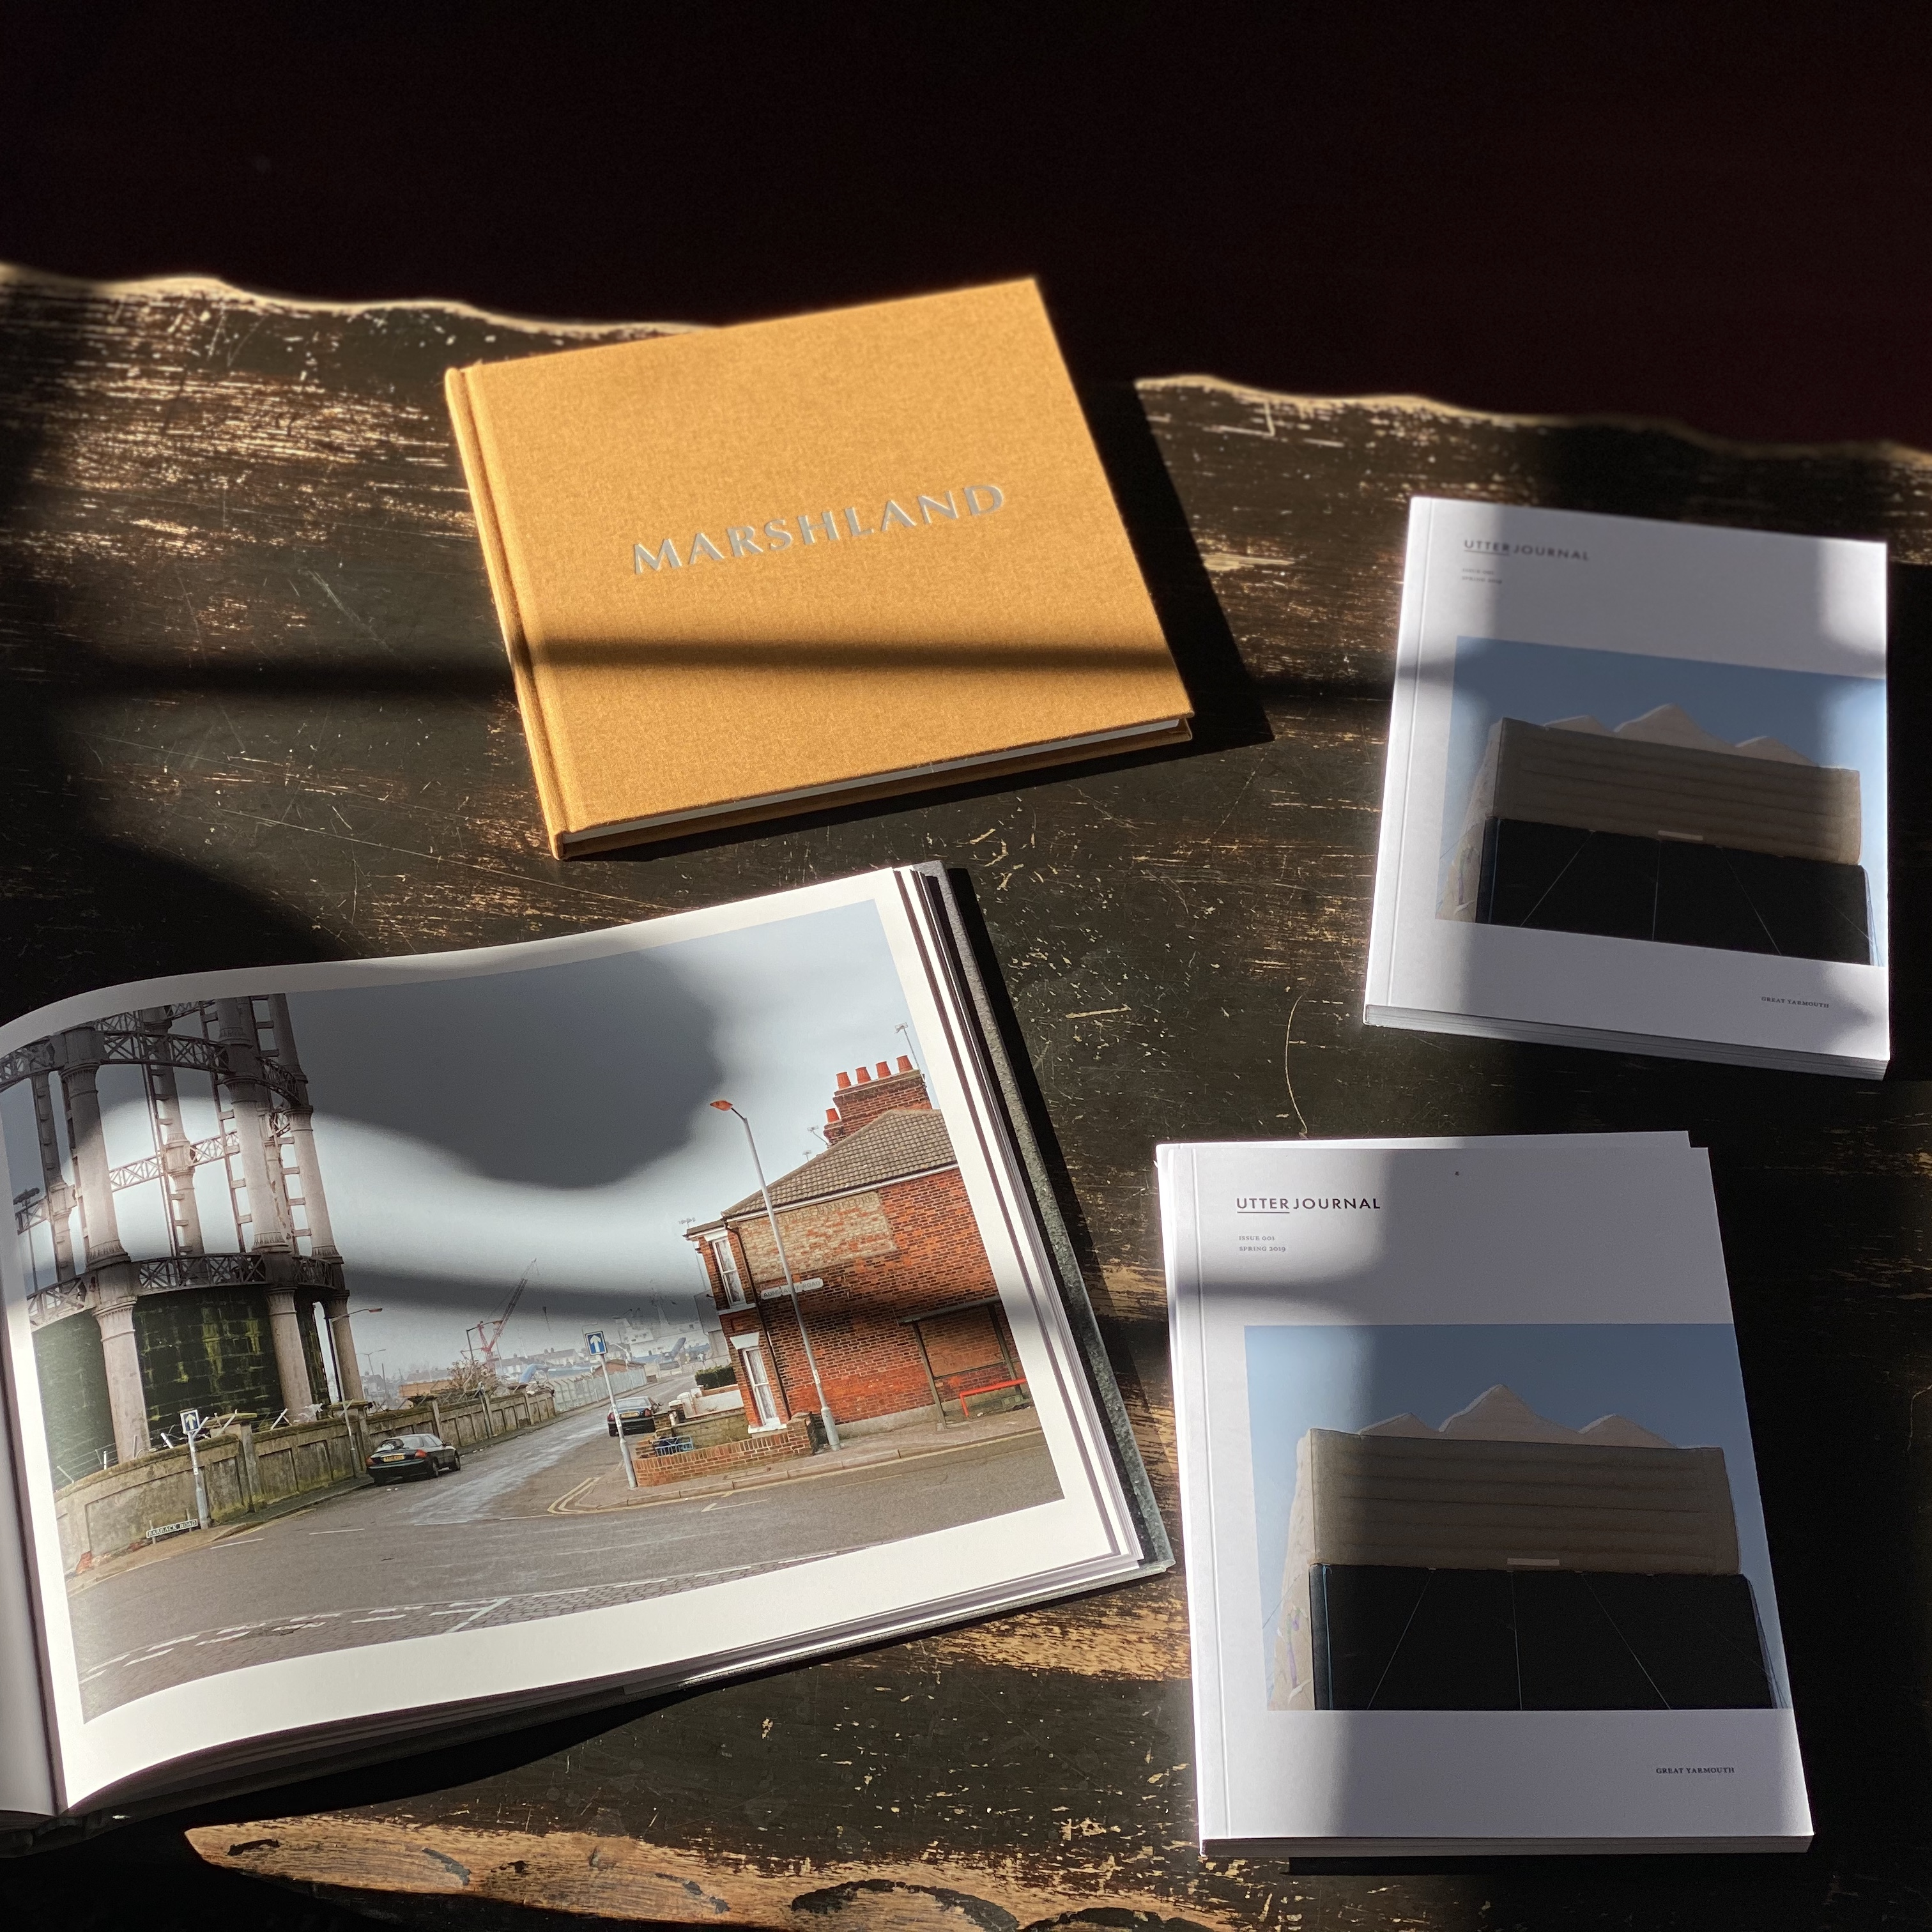 Mark Cator Photography Books on Great Yarmouth